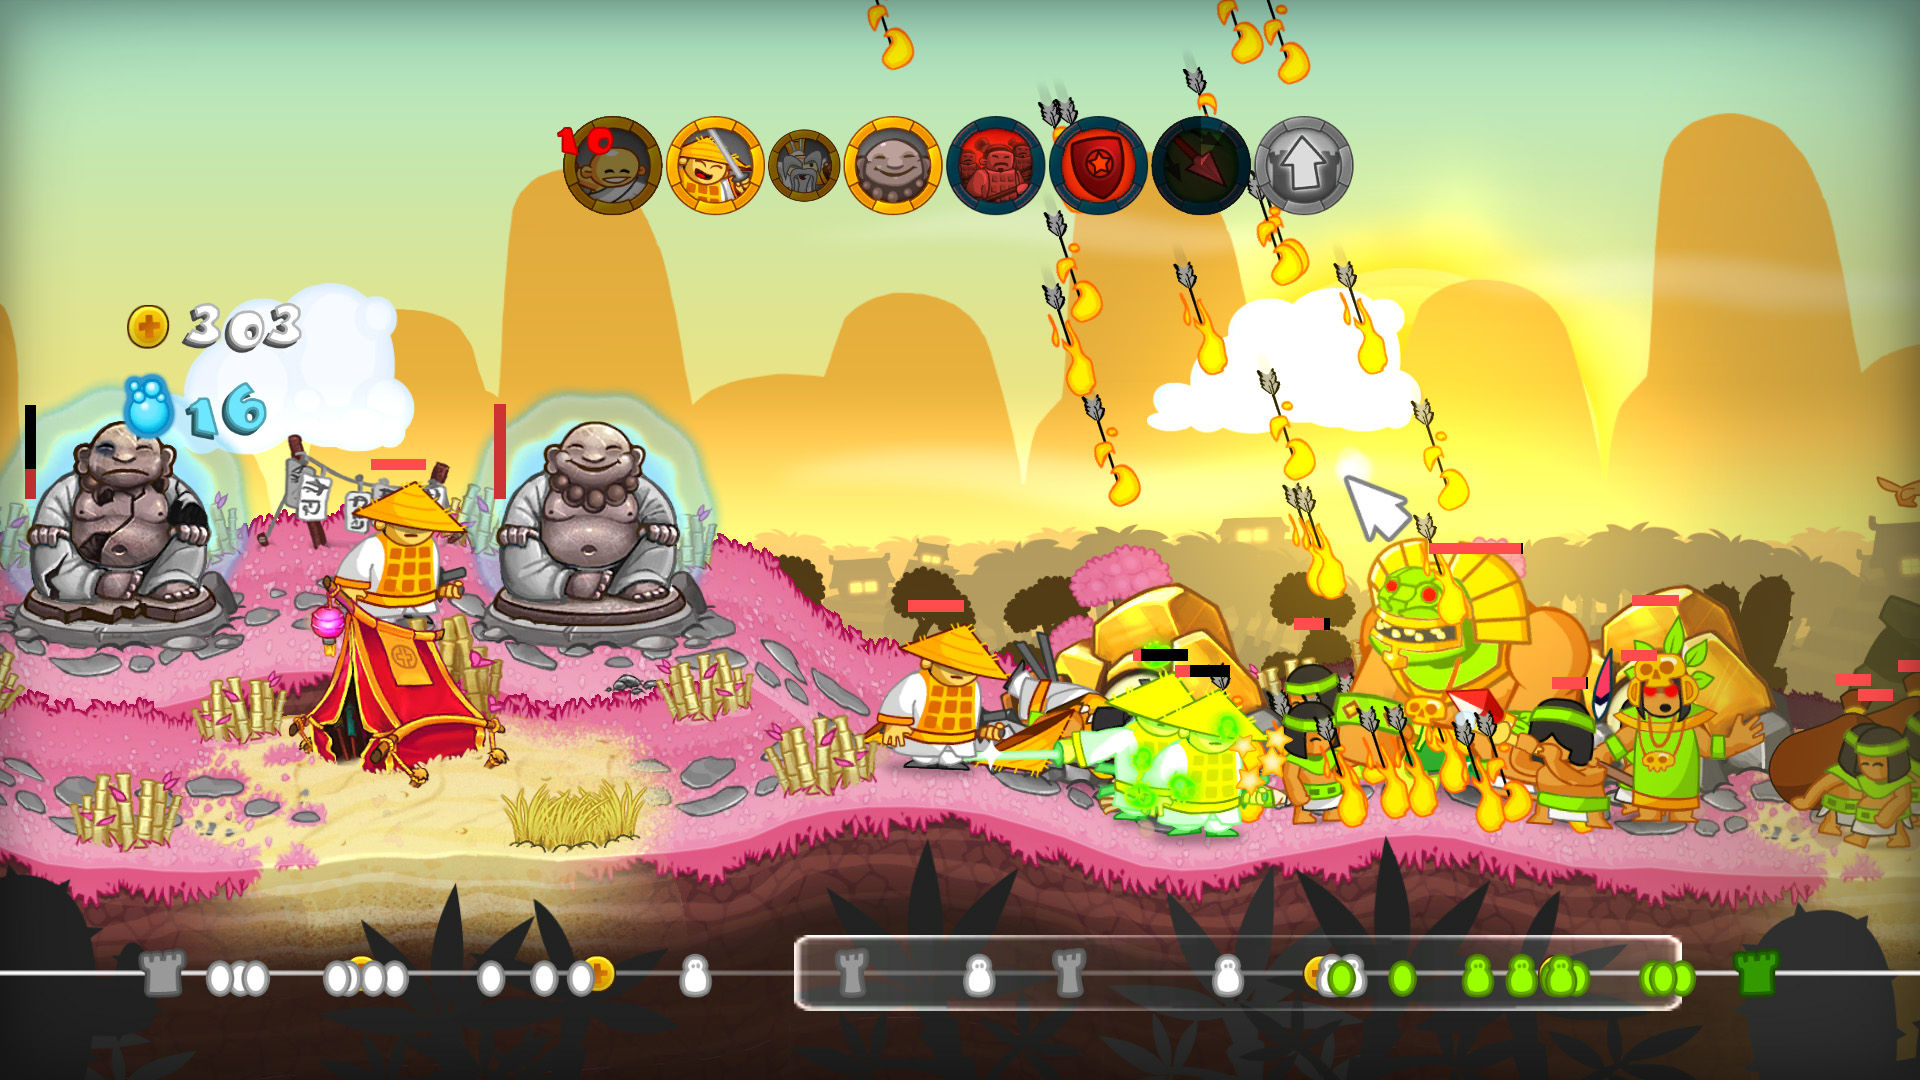 Swords and Soldiers HD is free for a limited time